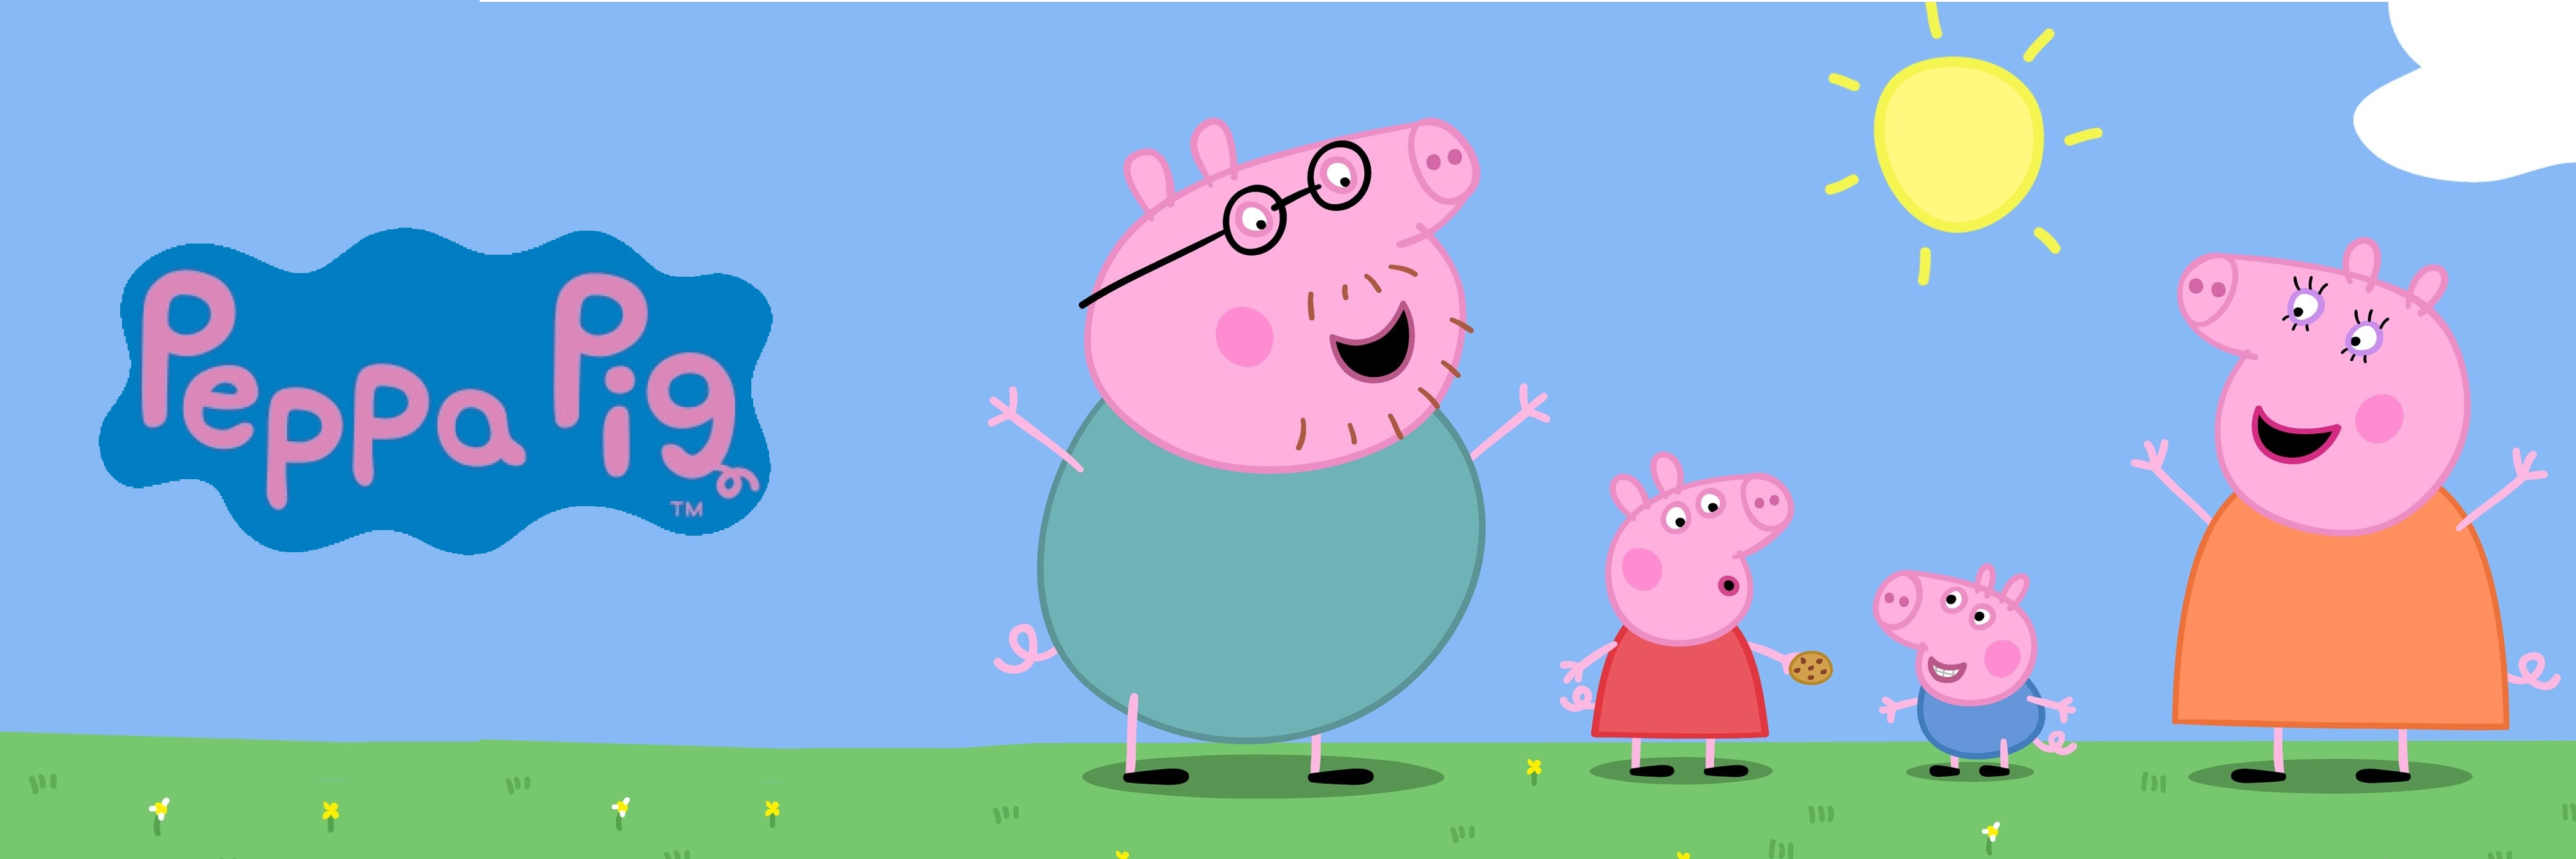 Banner Peppa Pig The Game